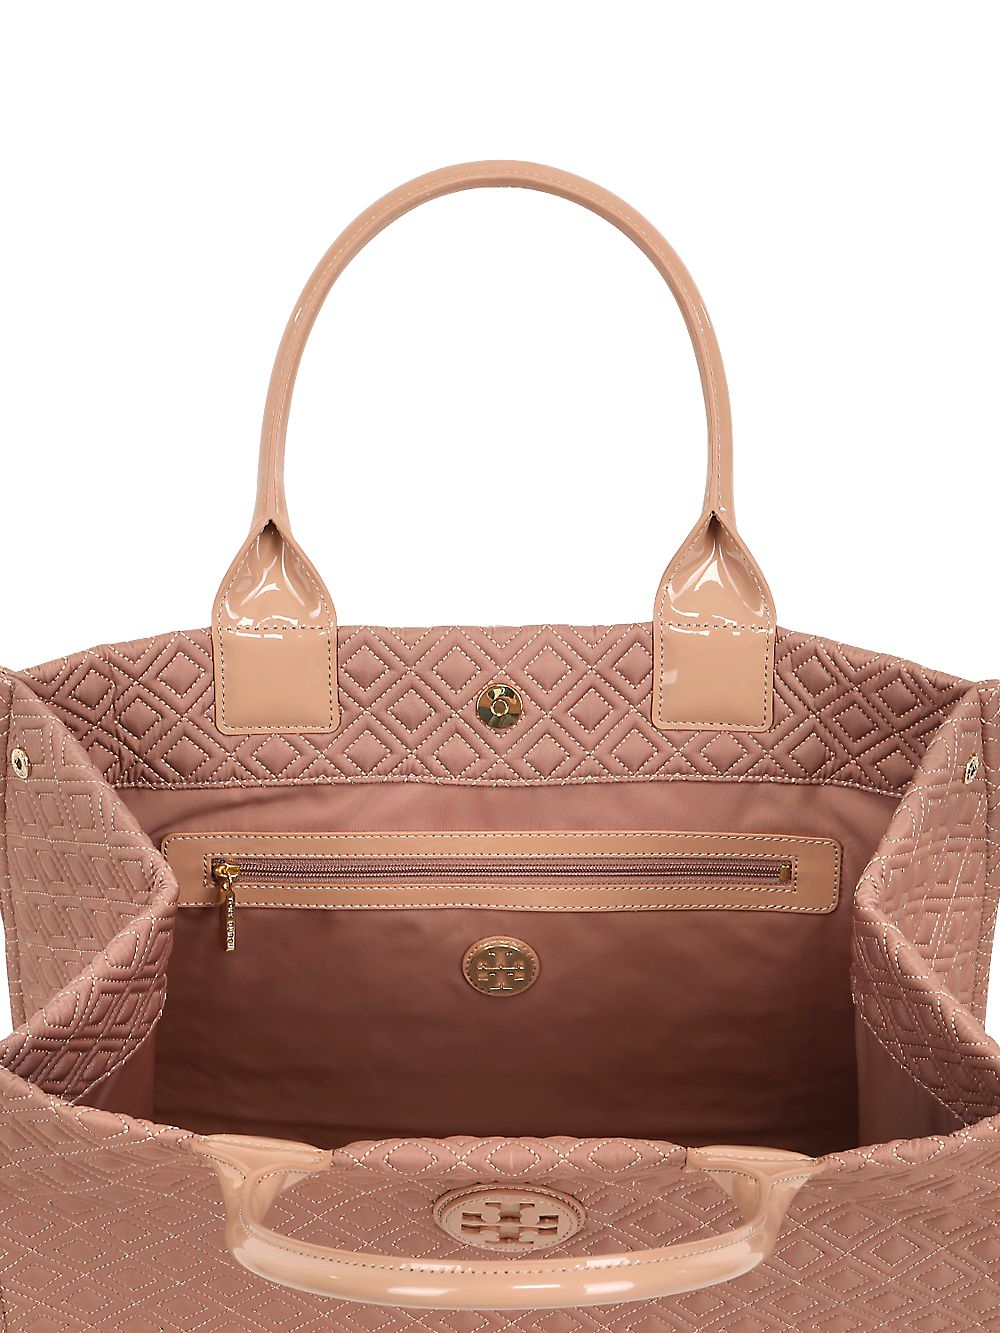 6876be5511f3 Tory Burch Ella Quilted Nylon Tote Bag in Pink - Lyst